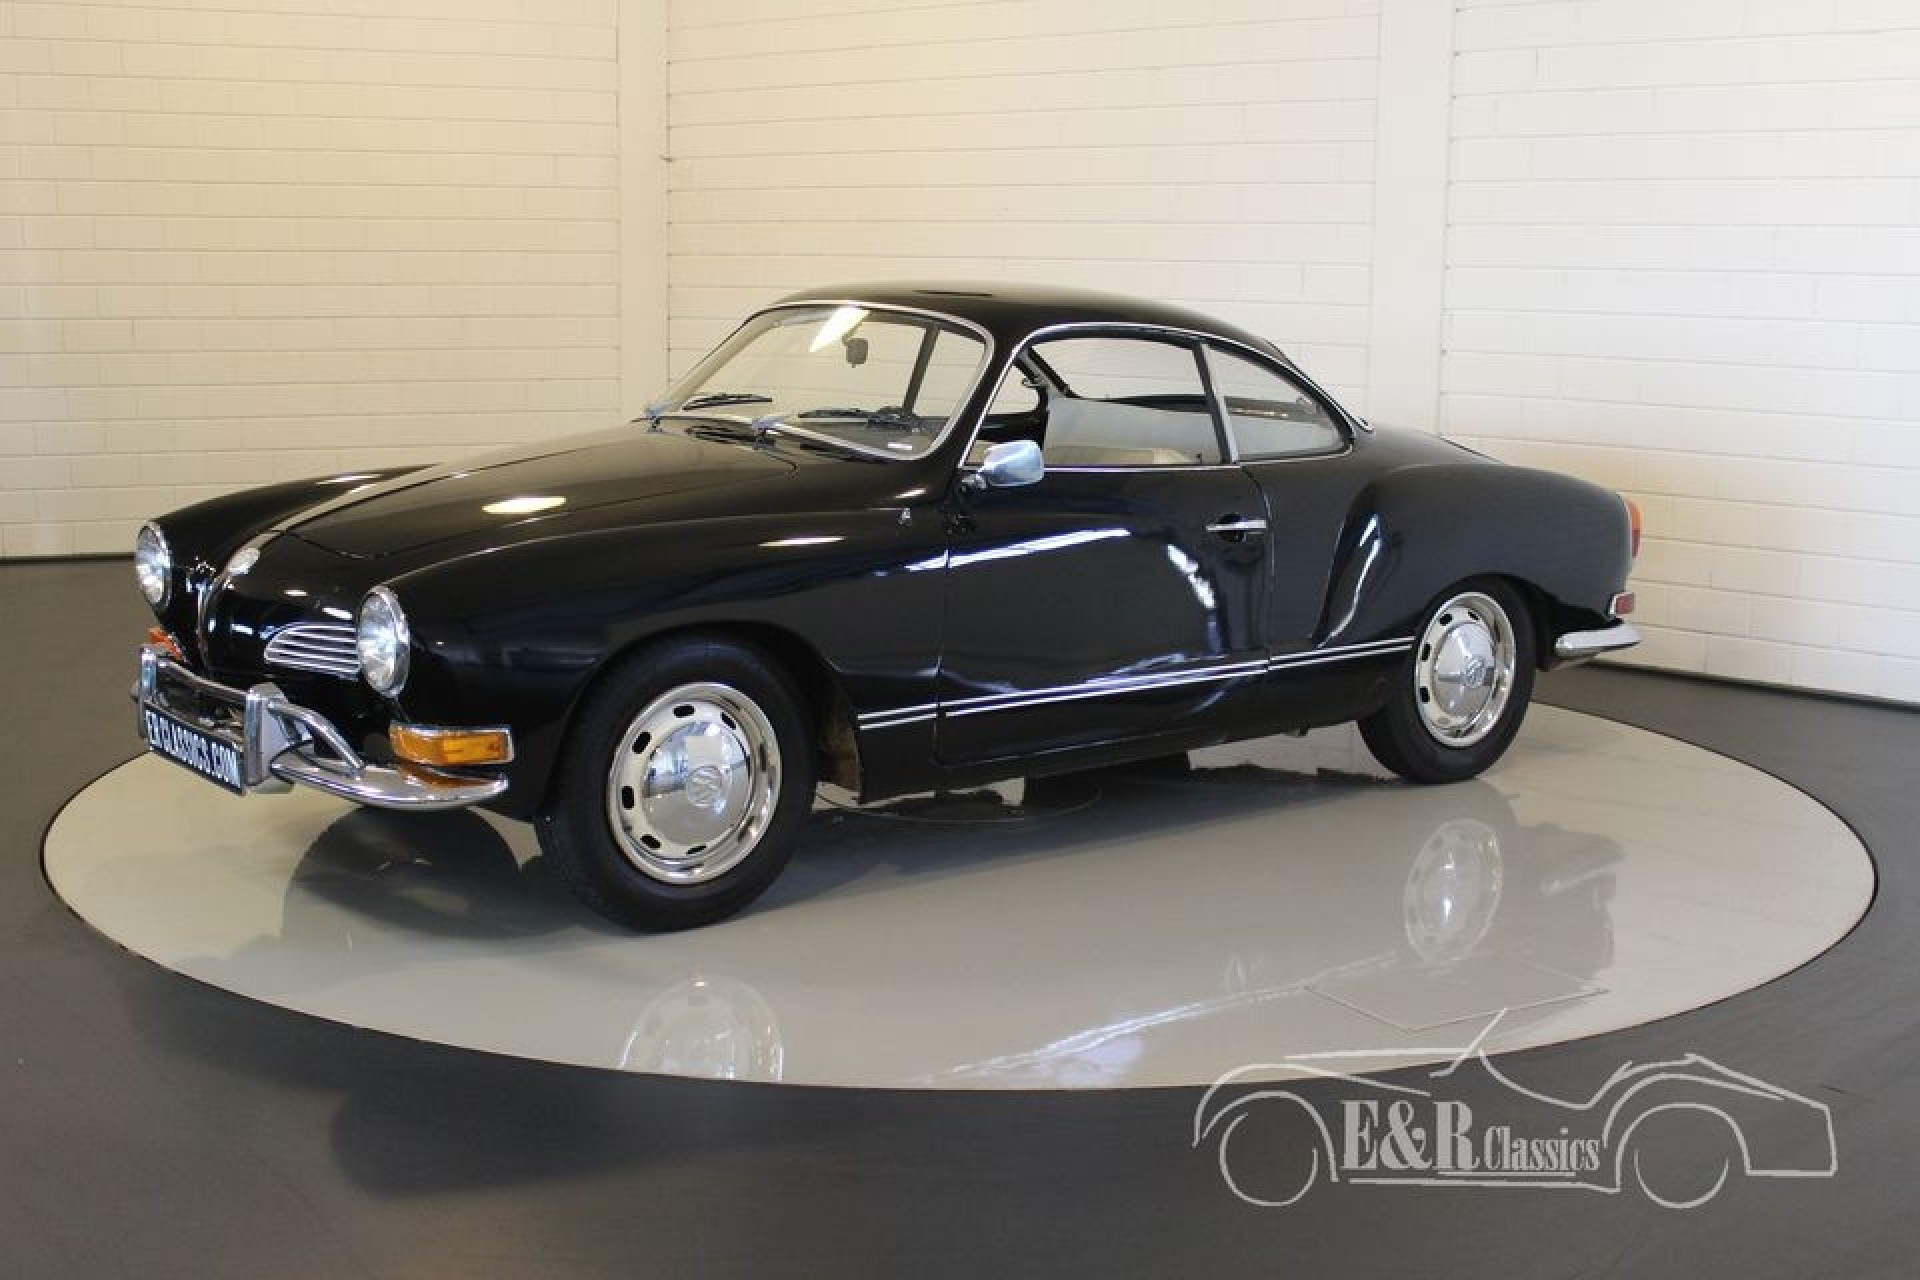 volkswagen karmann ghia 1970 vendre erclassics. Black Bedroom Furniture Sets. Home Design Ideas